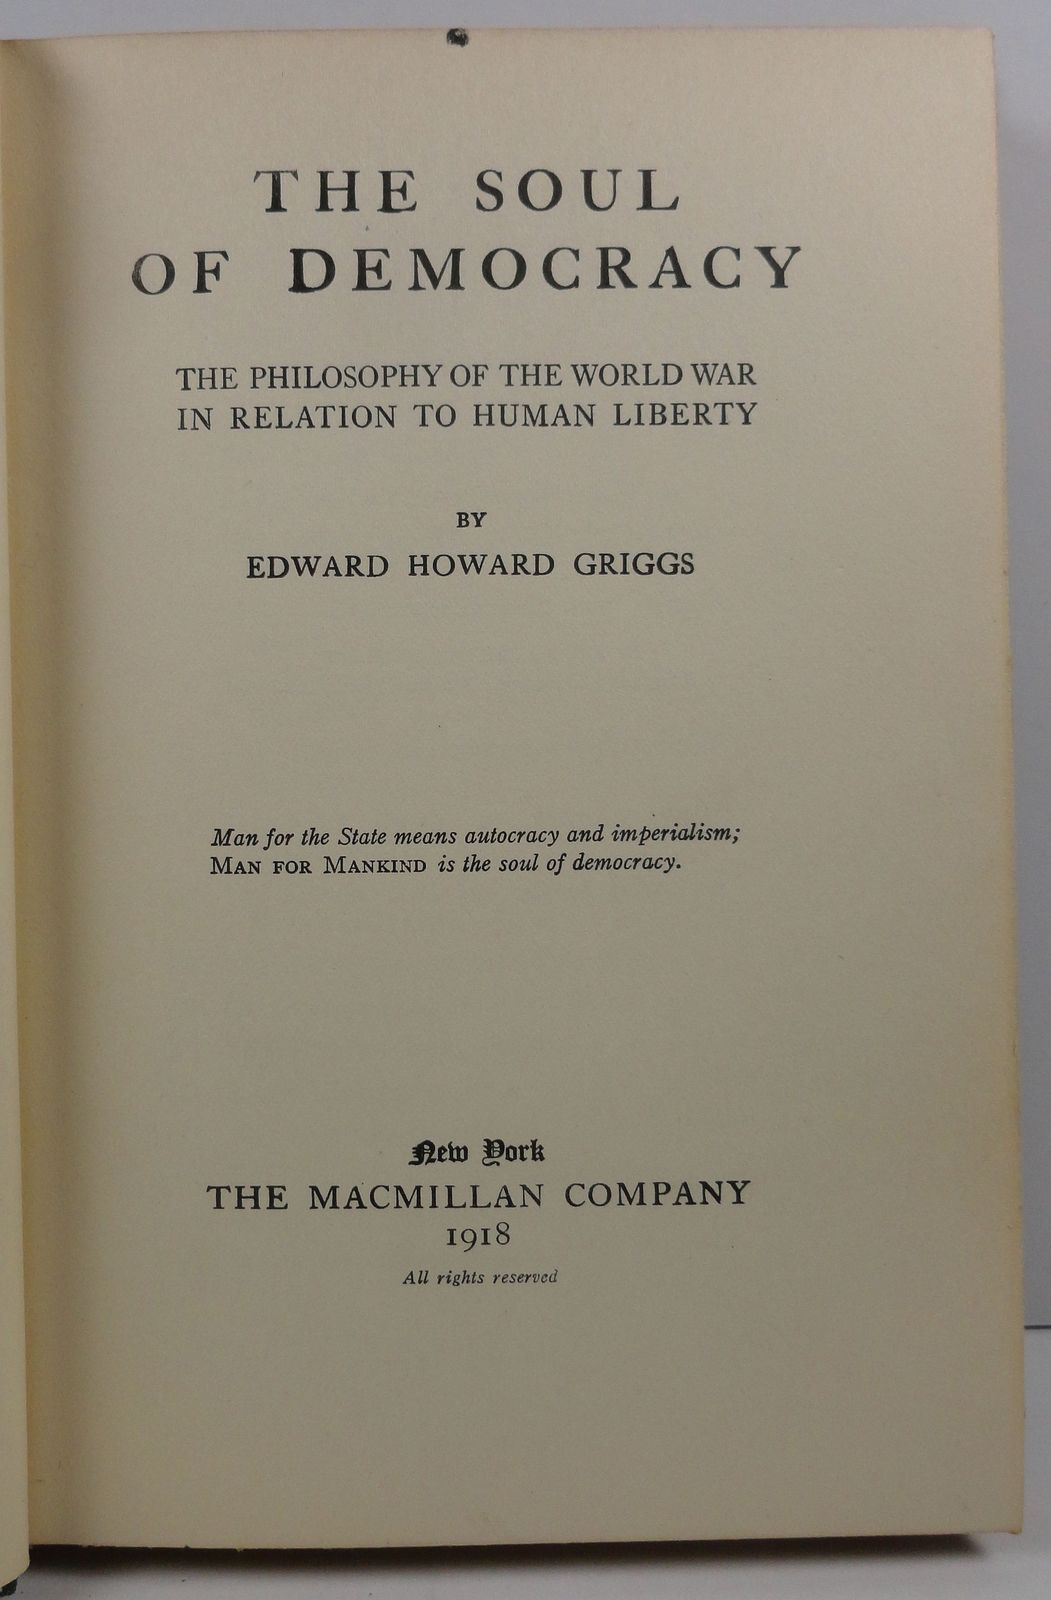 The Soul of Democracy by Edward Howard Griggs 1918 Macmillan